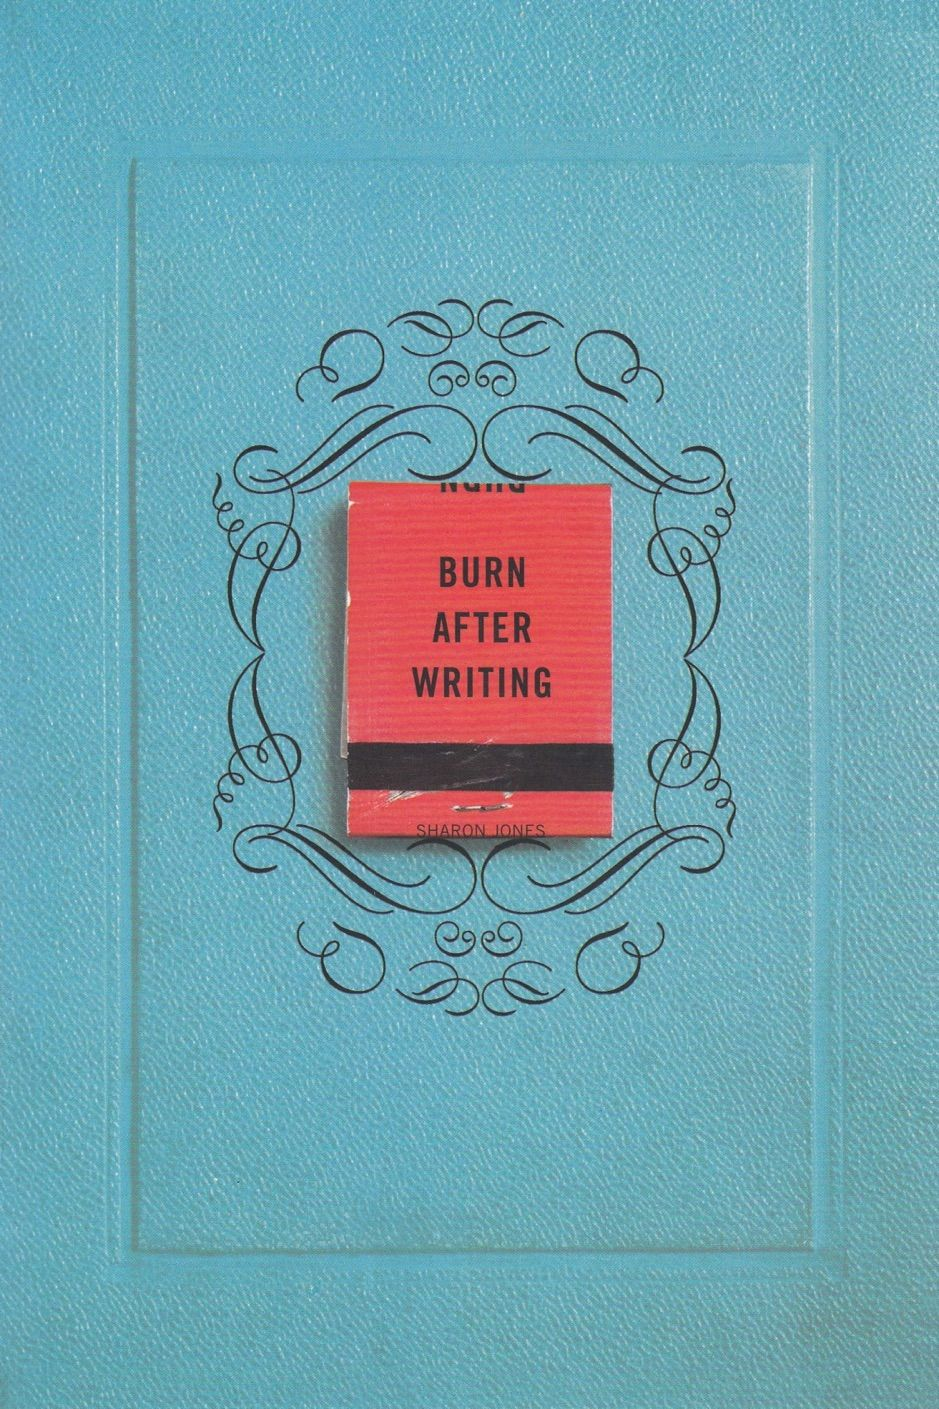 Burn After Writing Ad Writing Books Download Burn Ad In 2020 The Secret Book Burns Books